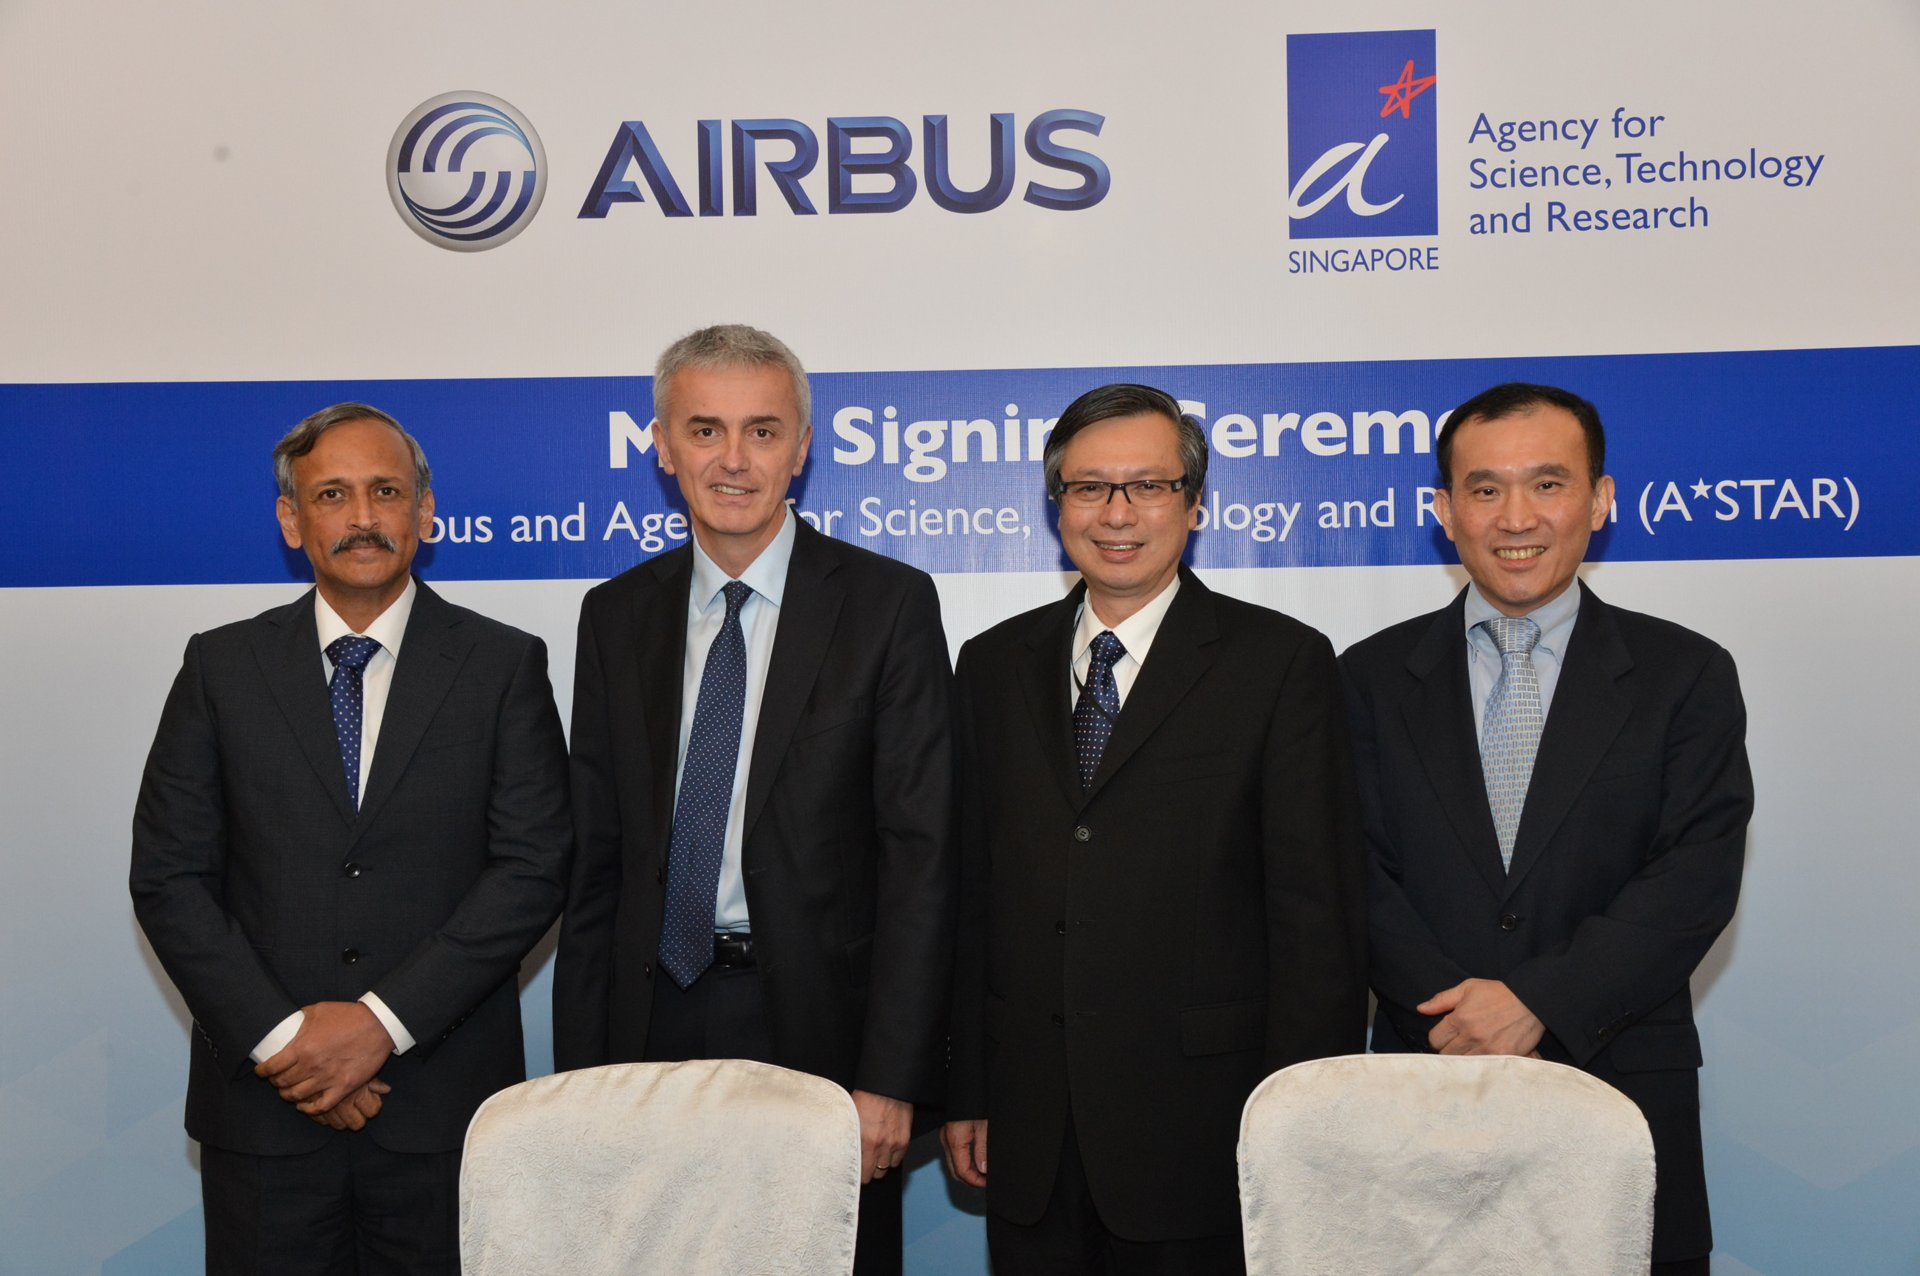 Airbus and A STAR signature